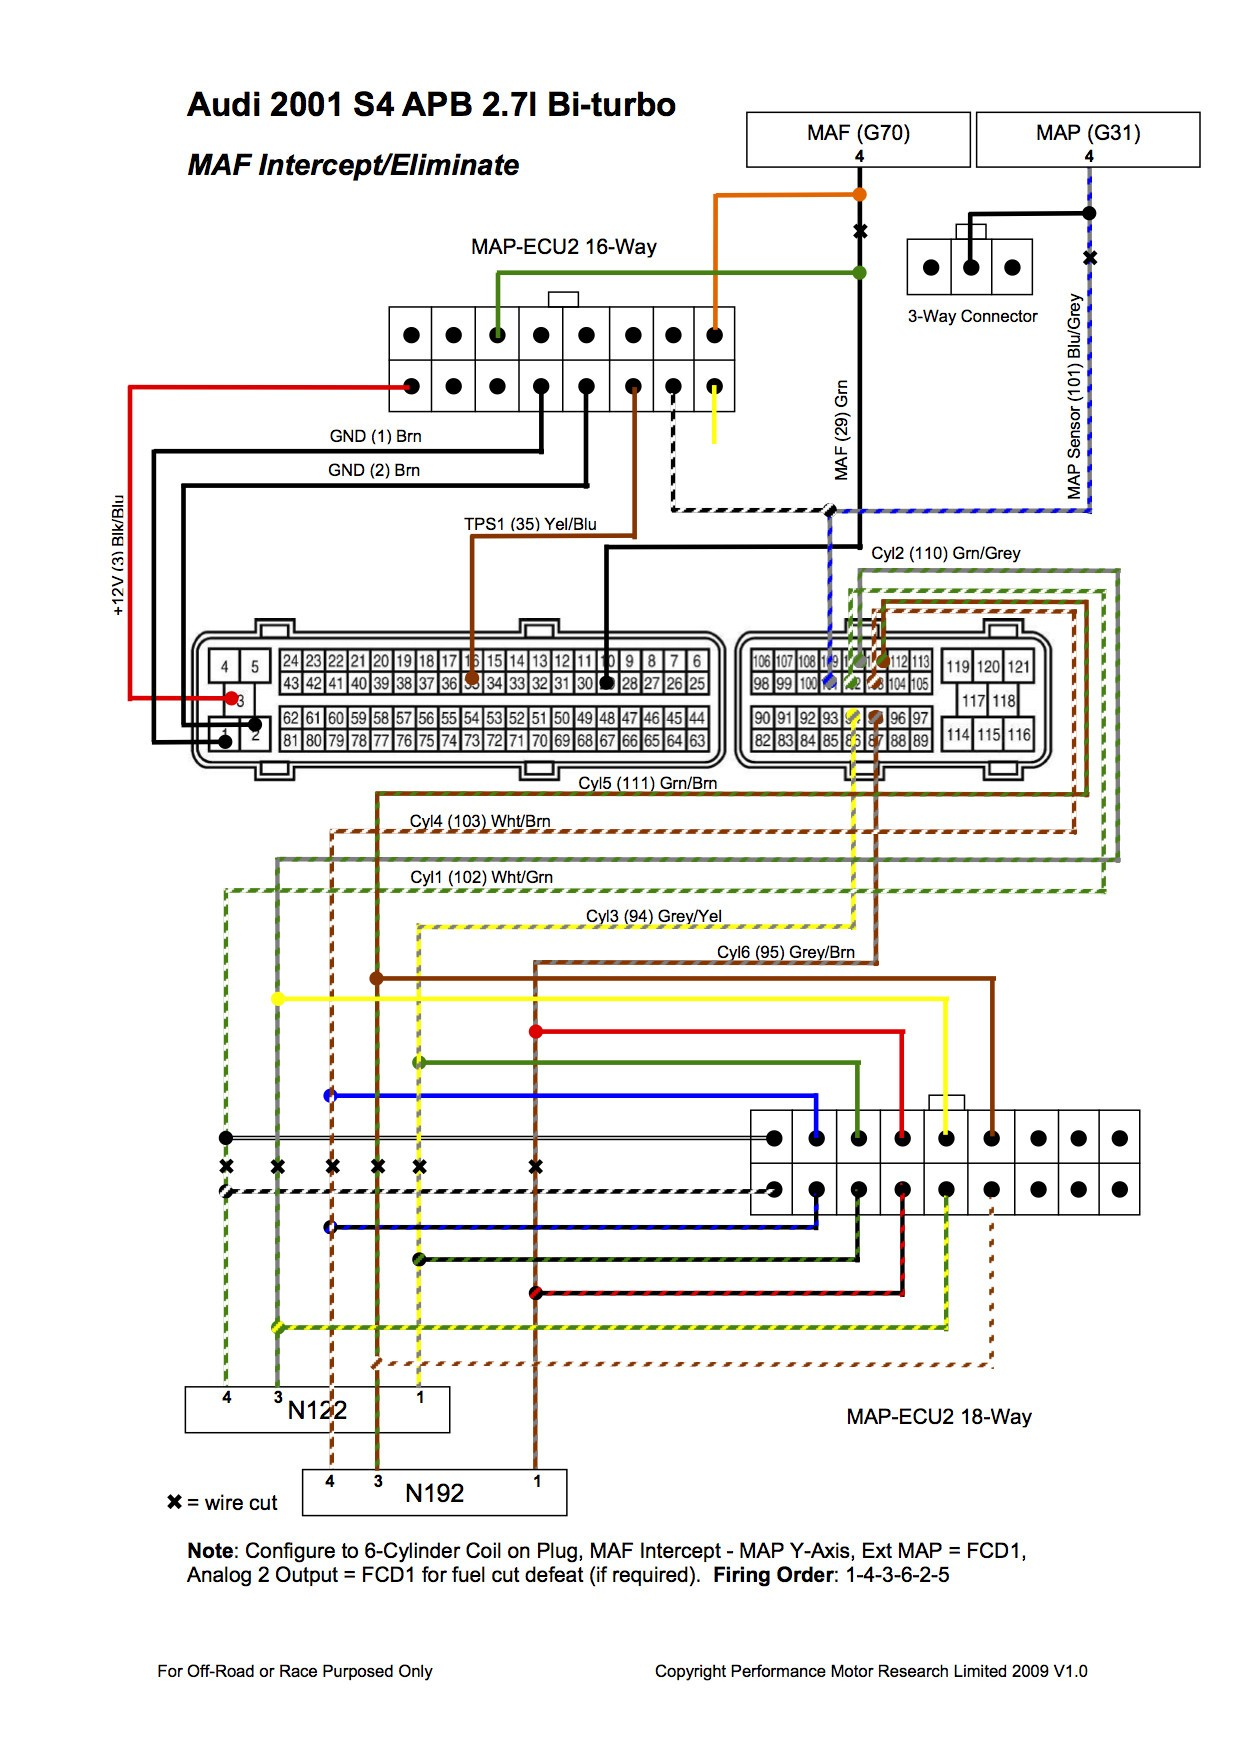 hight resolution of ecu circuit diagram enthusiast wiring diagrams u2022 rh rasalibre co ecu circuit diagram wiring diagram of maruti 800 car page